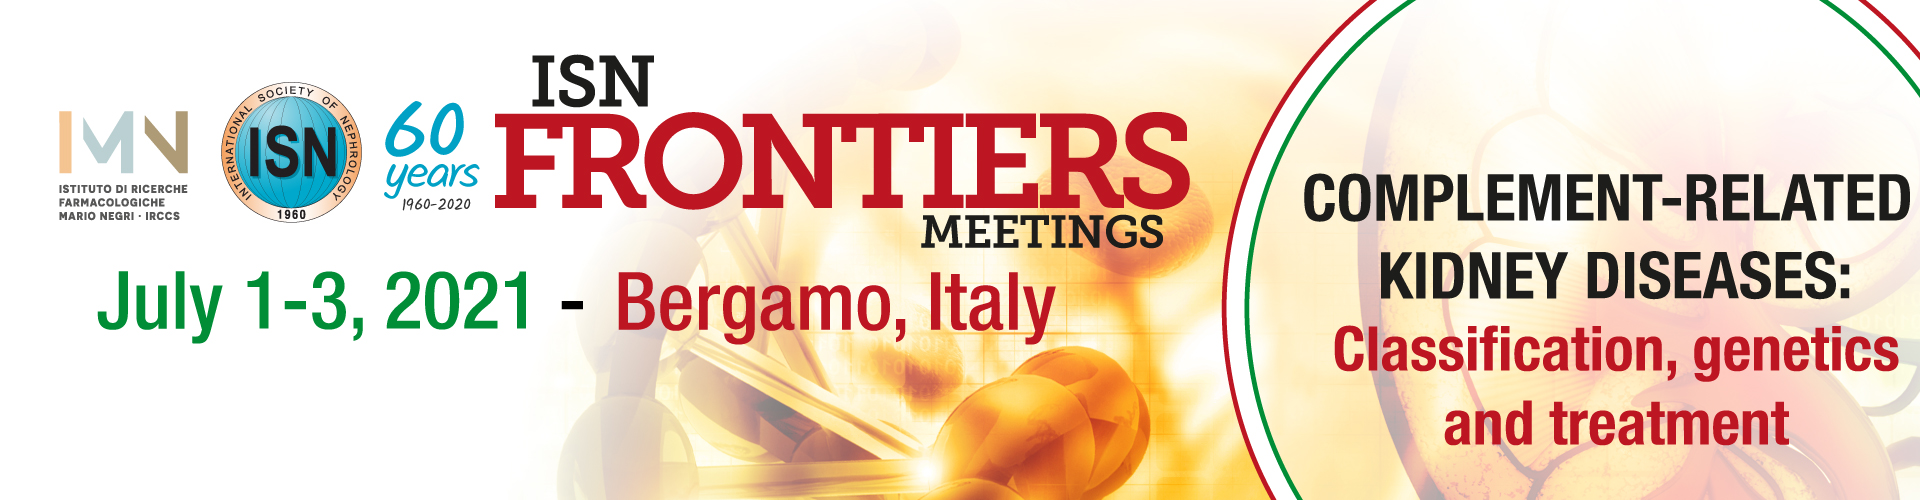 Join the ISN at Frontiers Meeting in Bergamo, Italy